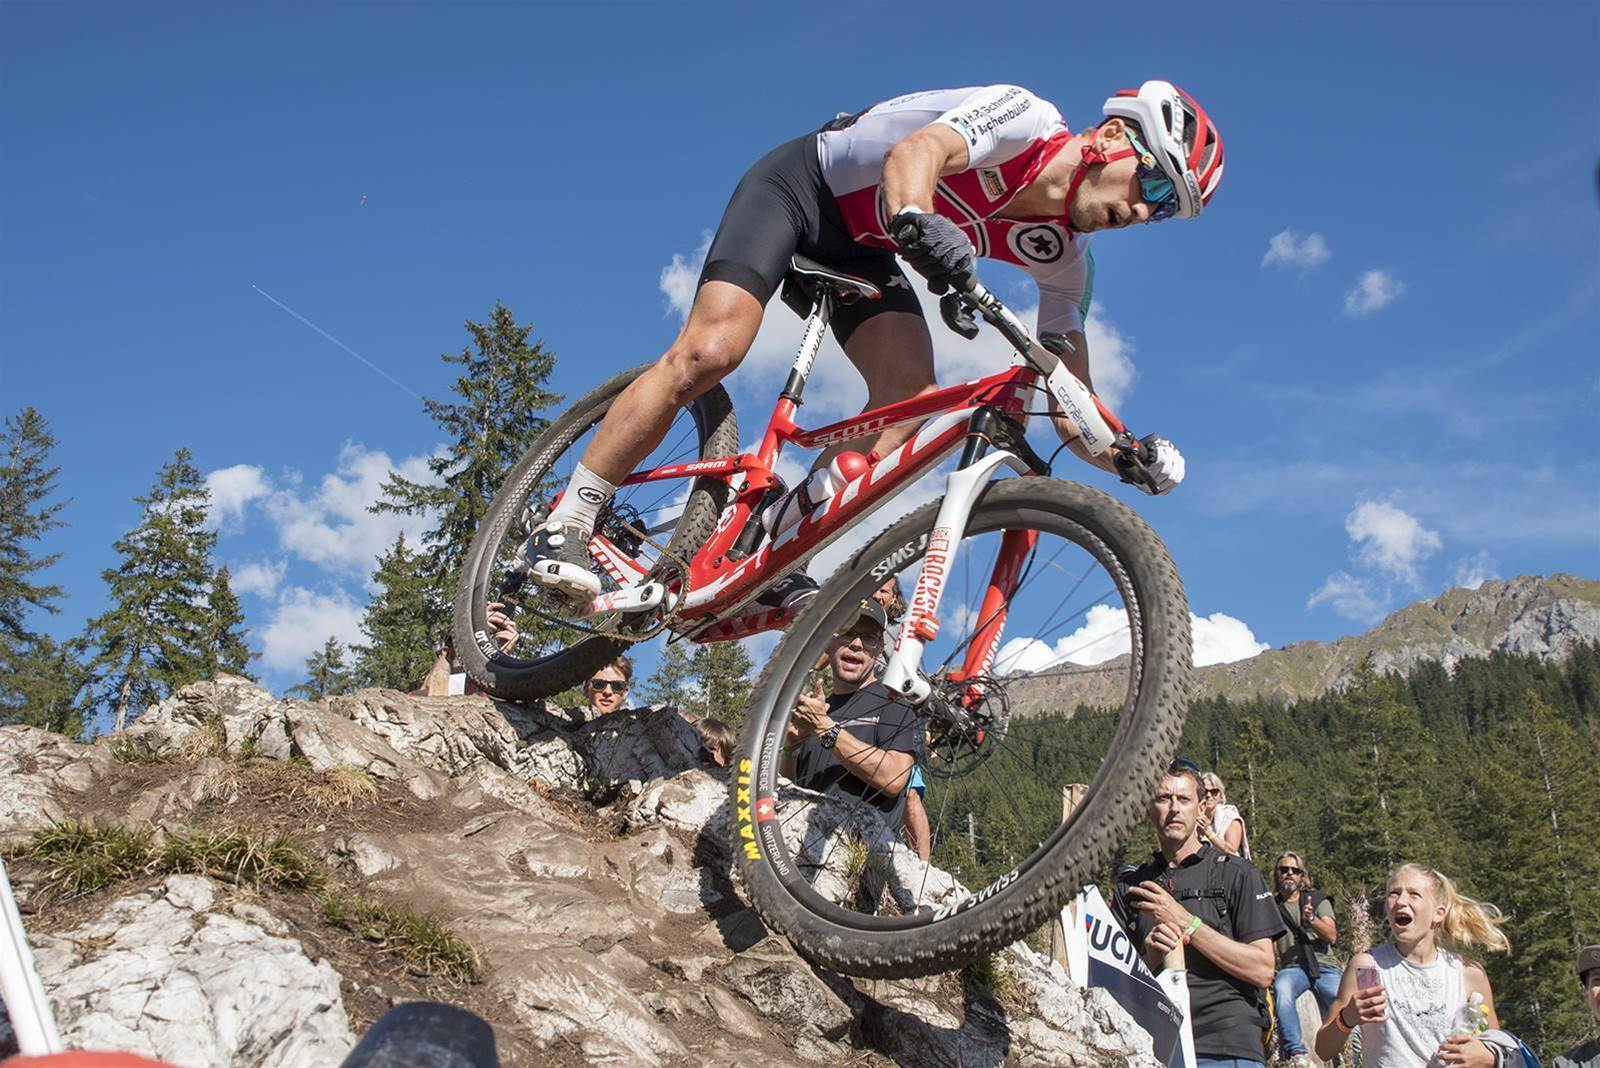 Courtney and Schurter win Elite XCO World Titles